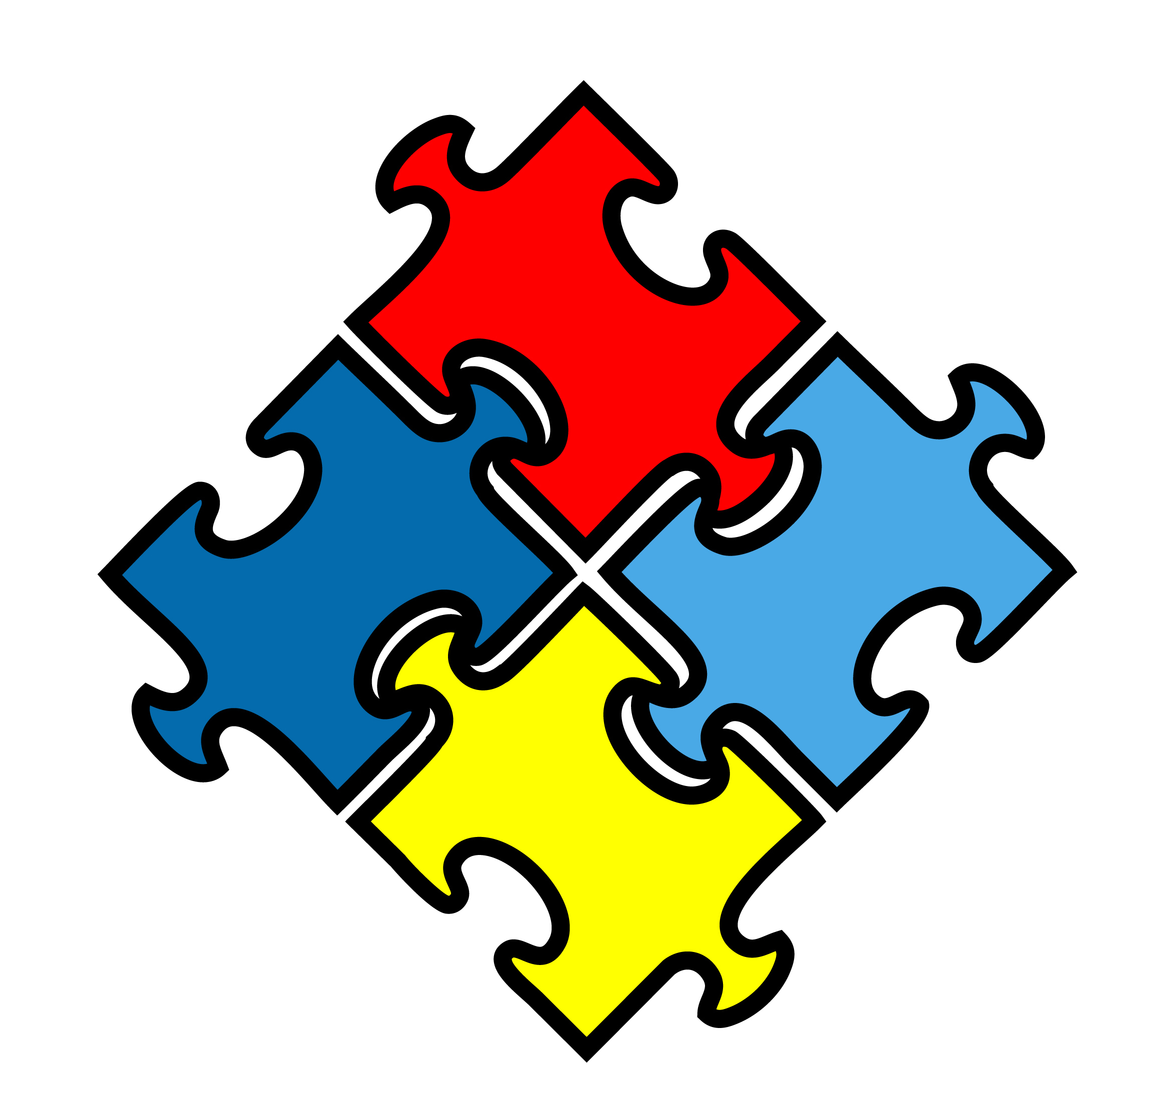 The autism puzzle piece we do not need a missing puzzle piece the autism puzzle piece we do not need a missing puzzle piece what we need is acceptance autism daily newscast buycottarizona